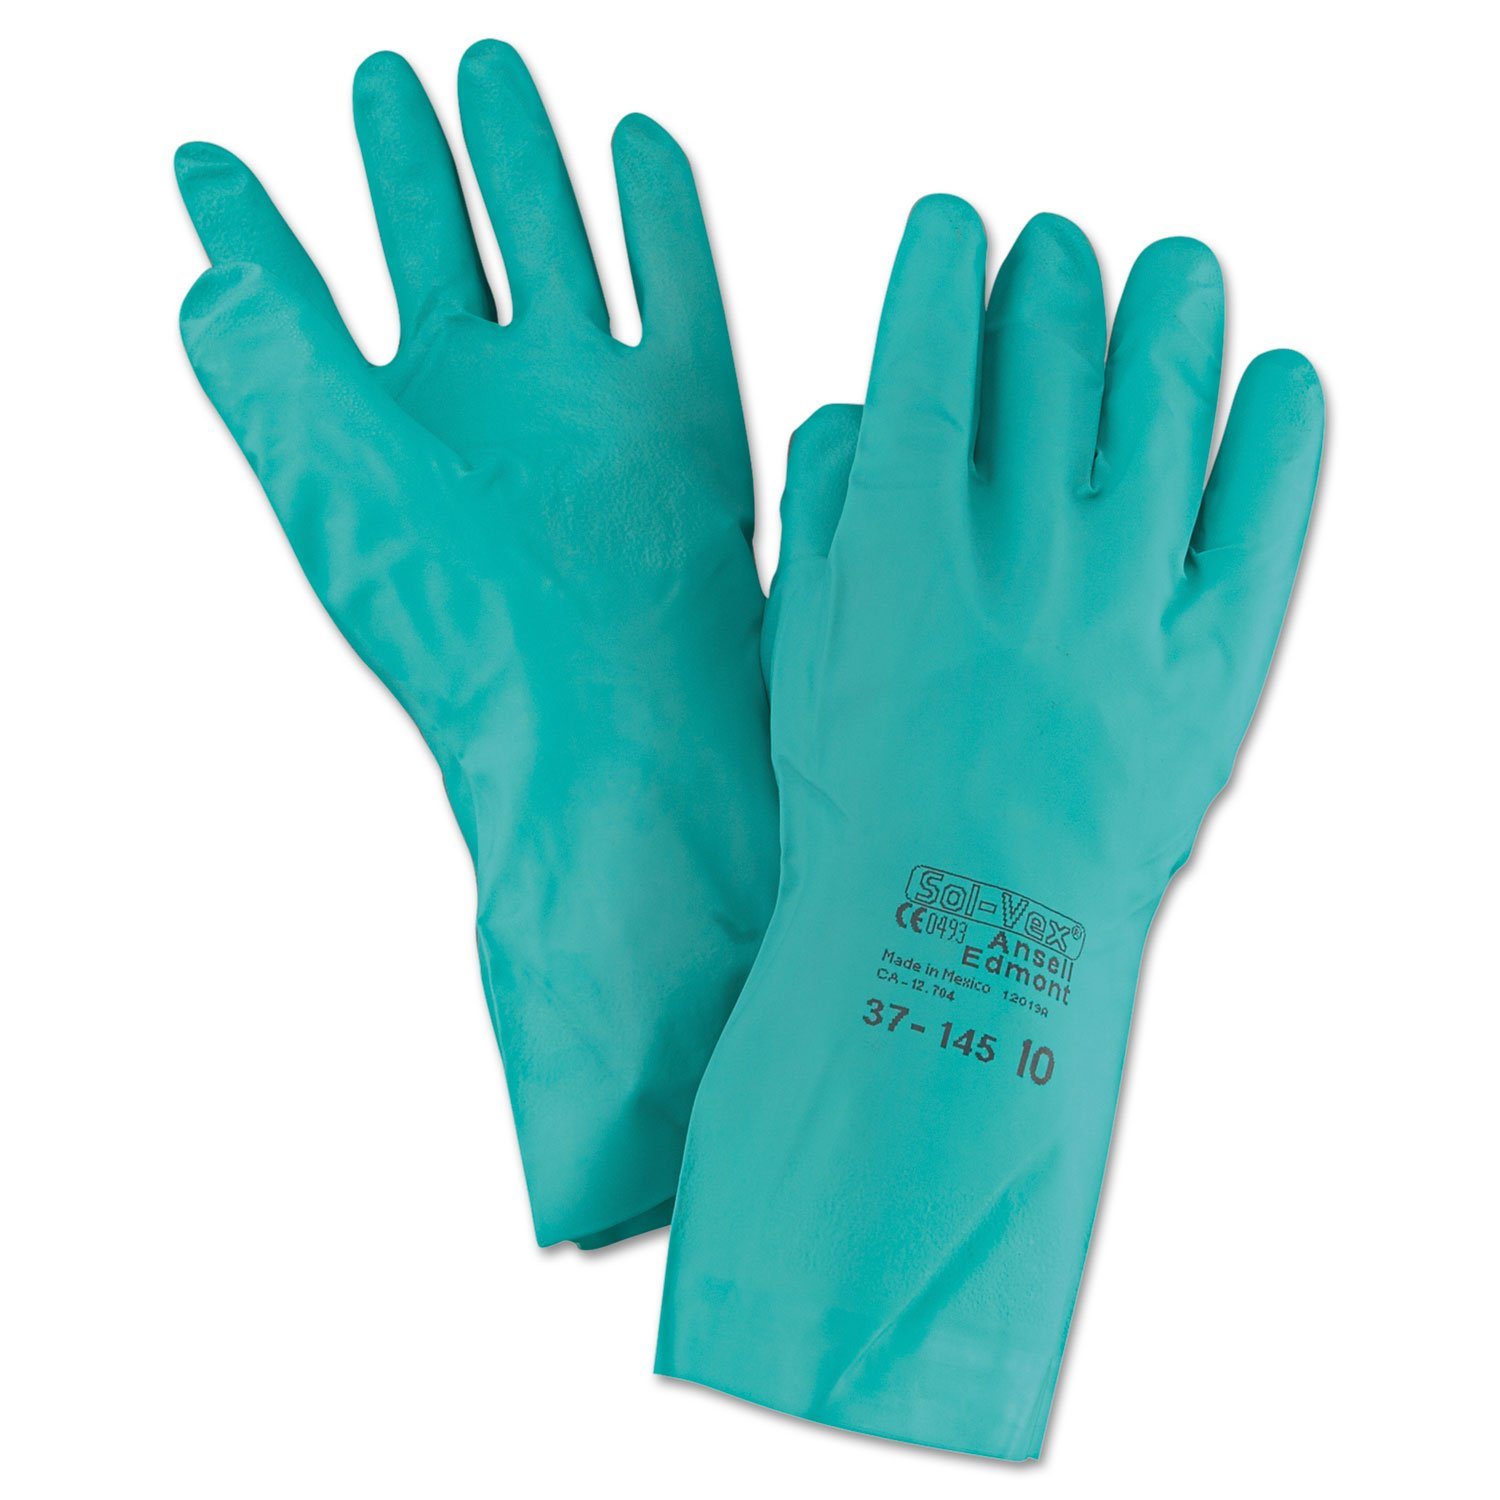 Pack Of 5 Ansell 37-675 Solvex Green Gauntlets Size 8